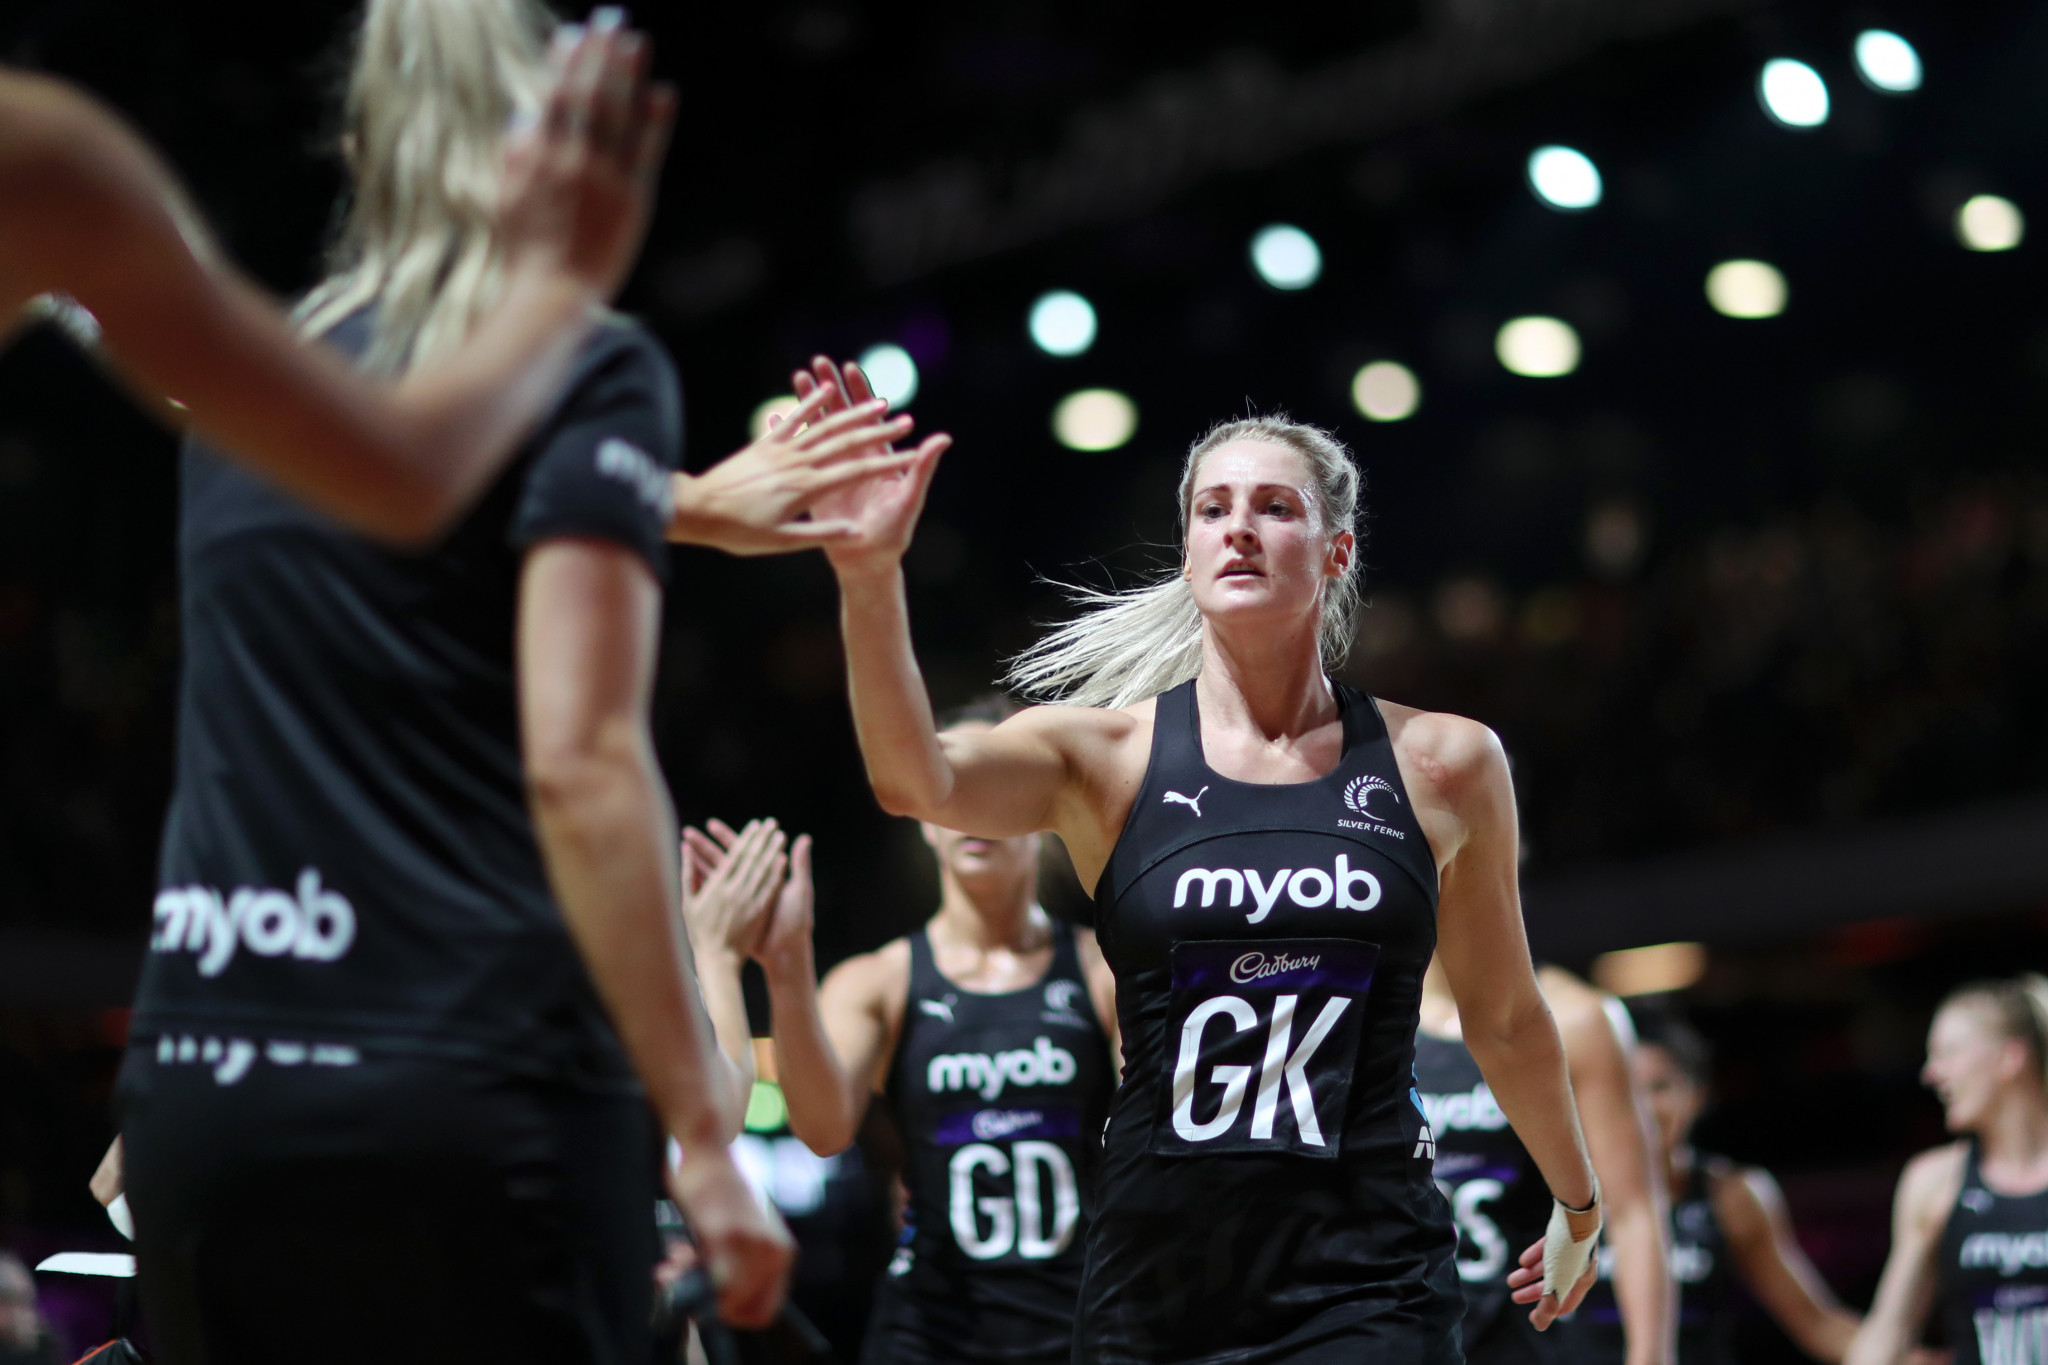 New Zealand and Jamaica to meet in Netball Nations Cup final